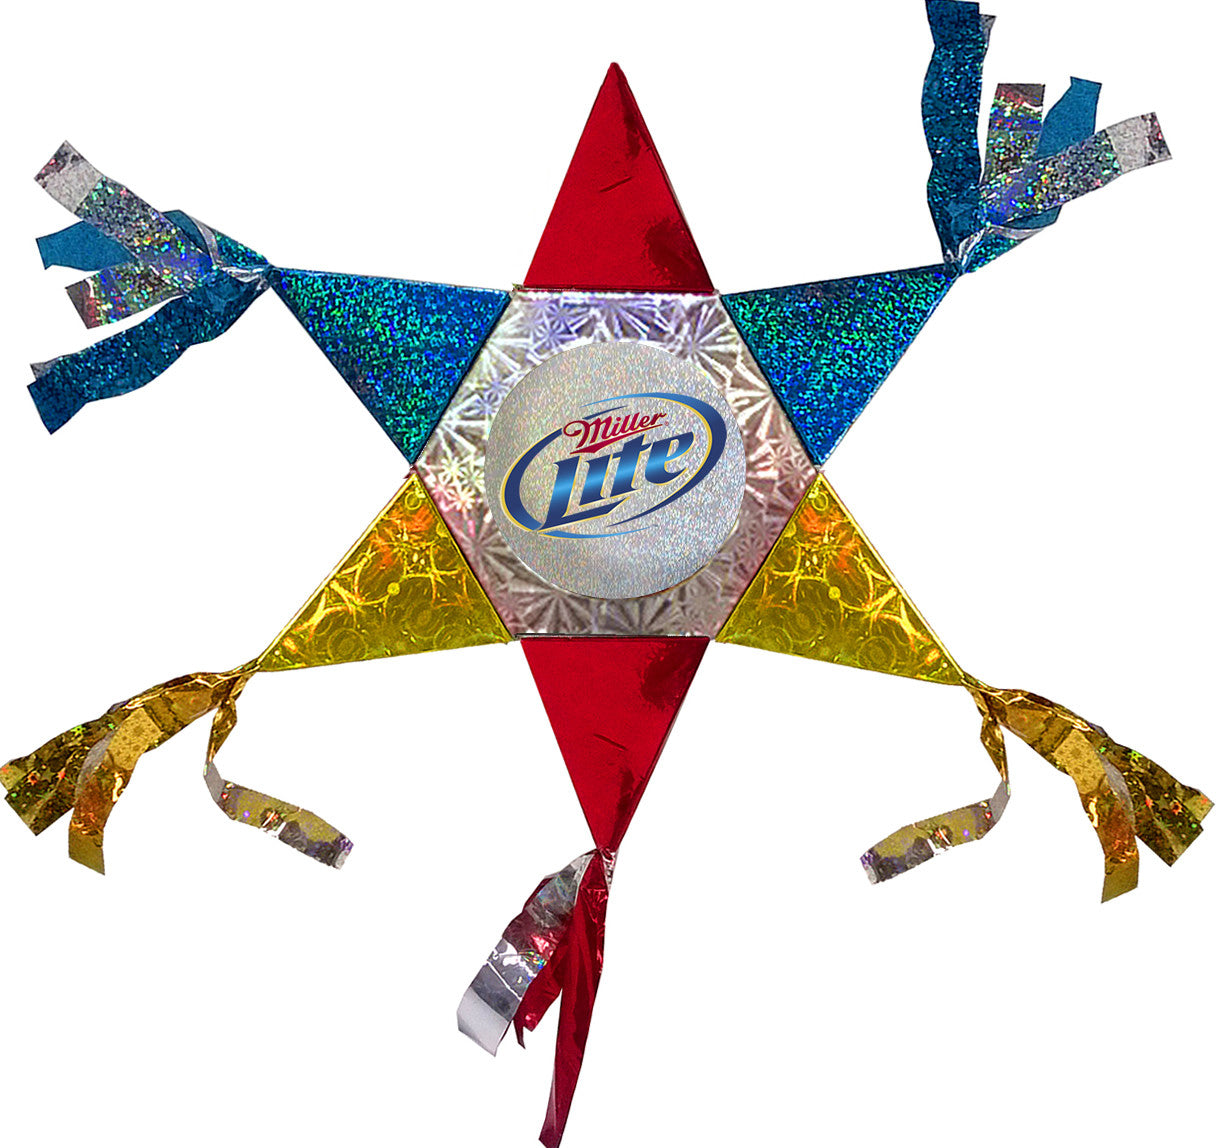 Miller Light Mini Star Promotional Pinata